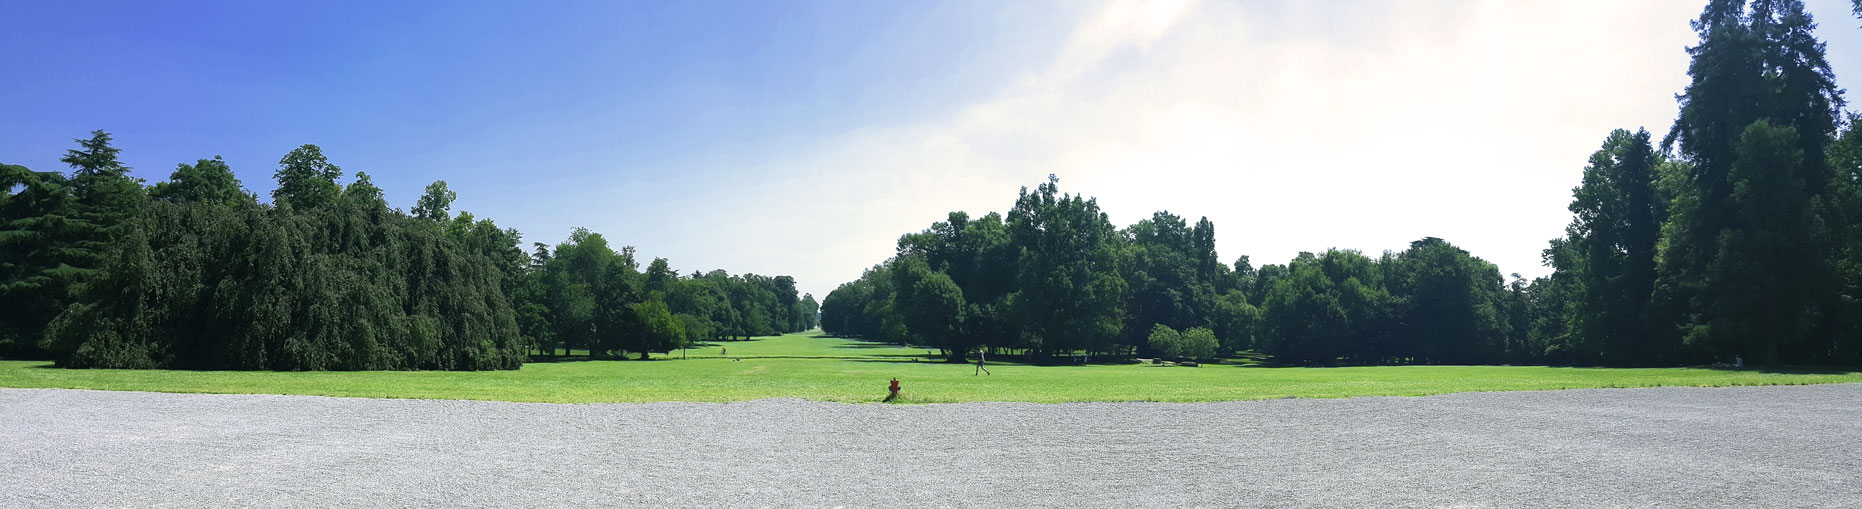 Things to do in Monza - Monza Park